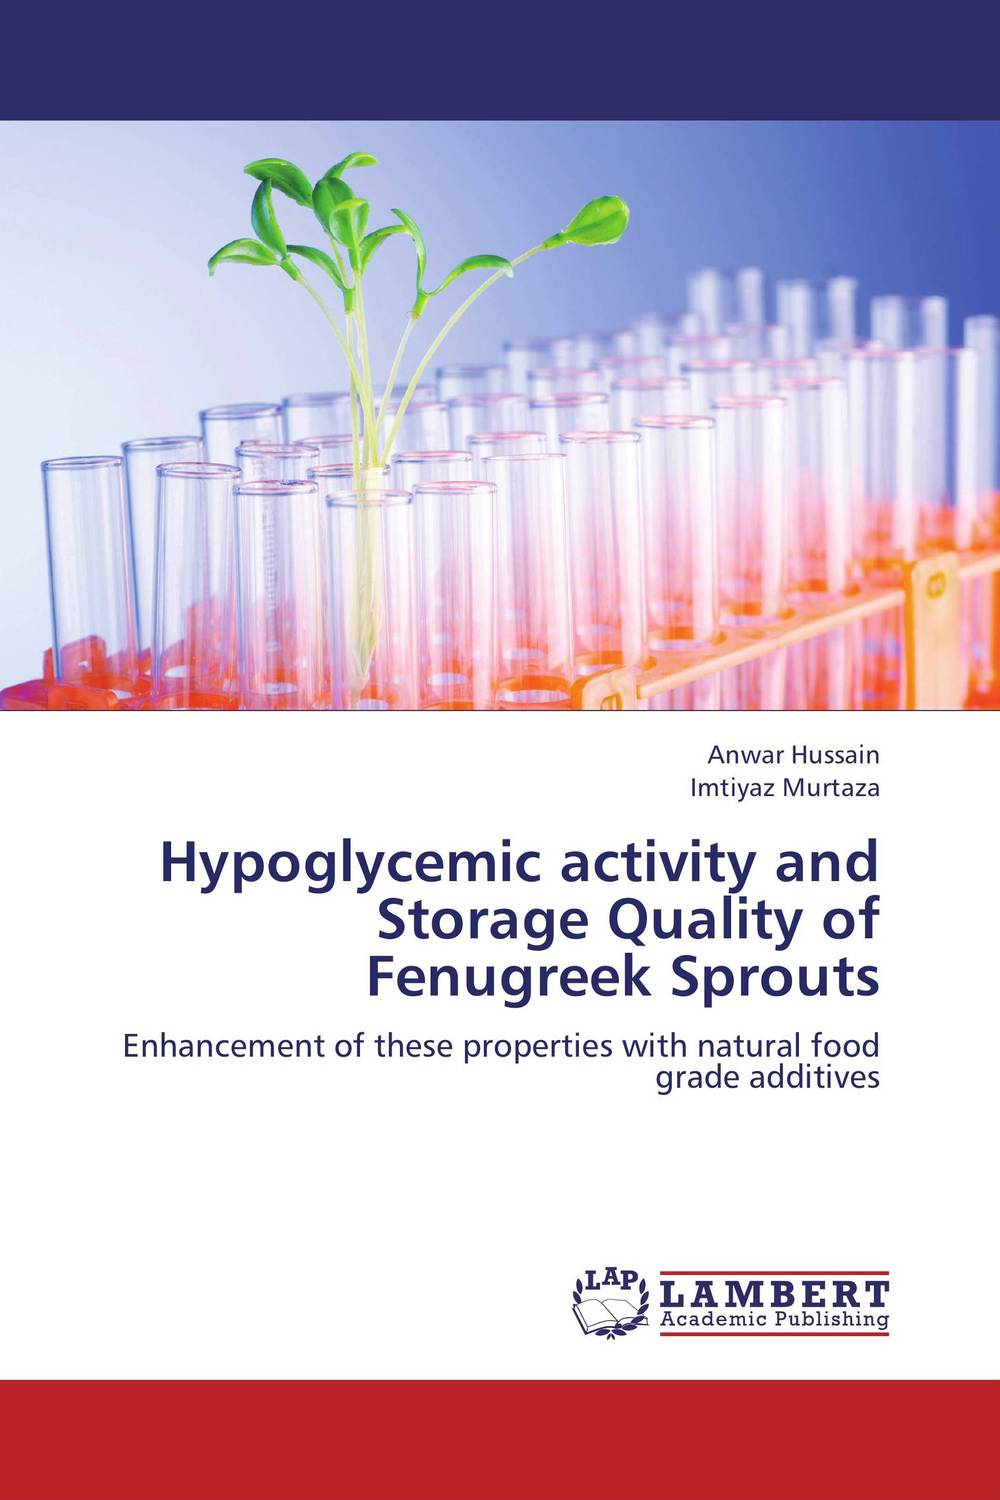 Hypoglycemic activity and Storage Quality of Fenugreek Sprouts manisha sharma ajit varma and harsha kharkwal interaction of symbiotic fungus with fenugreek